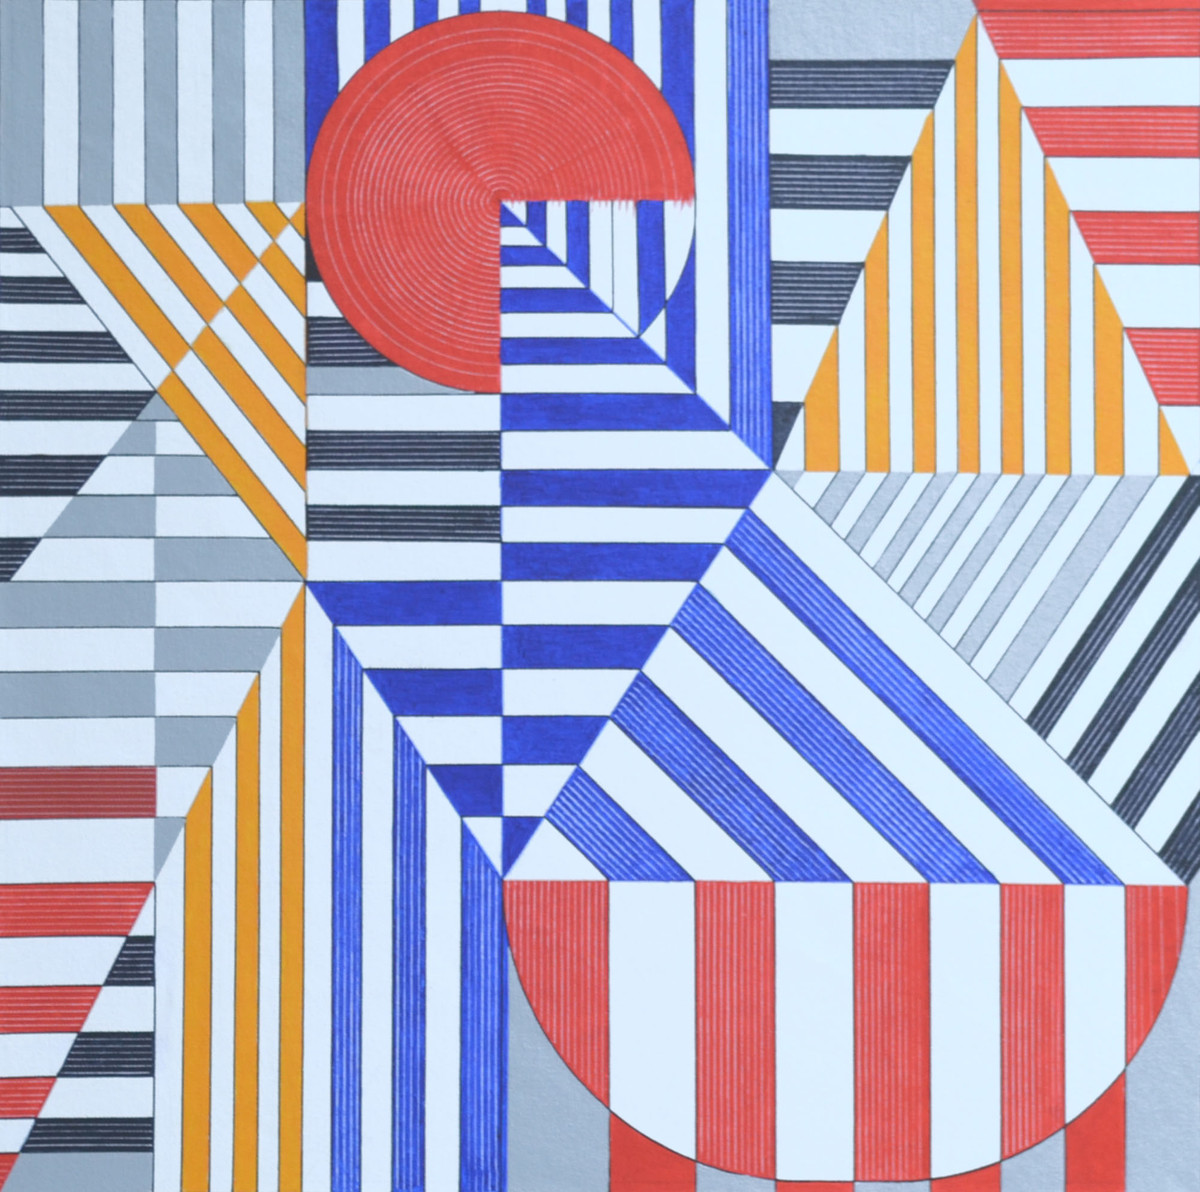 Space d - 13 by S K Sahni, Geometrical Painting, Acrylic on Canvas, Red color